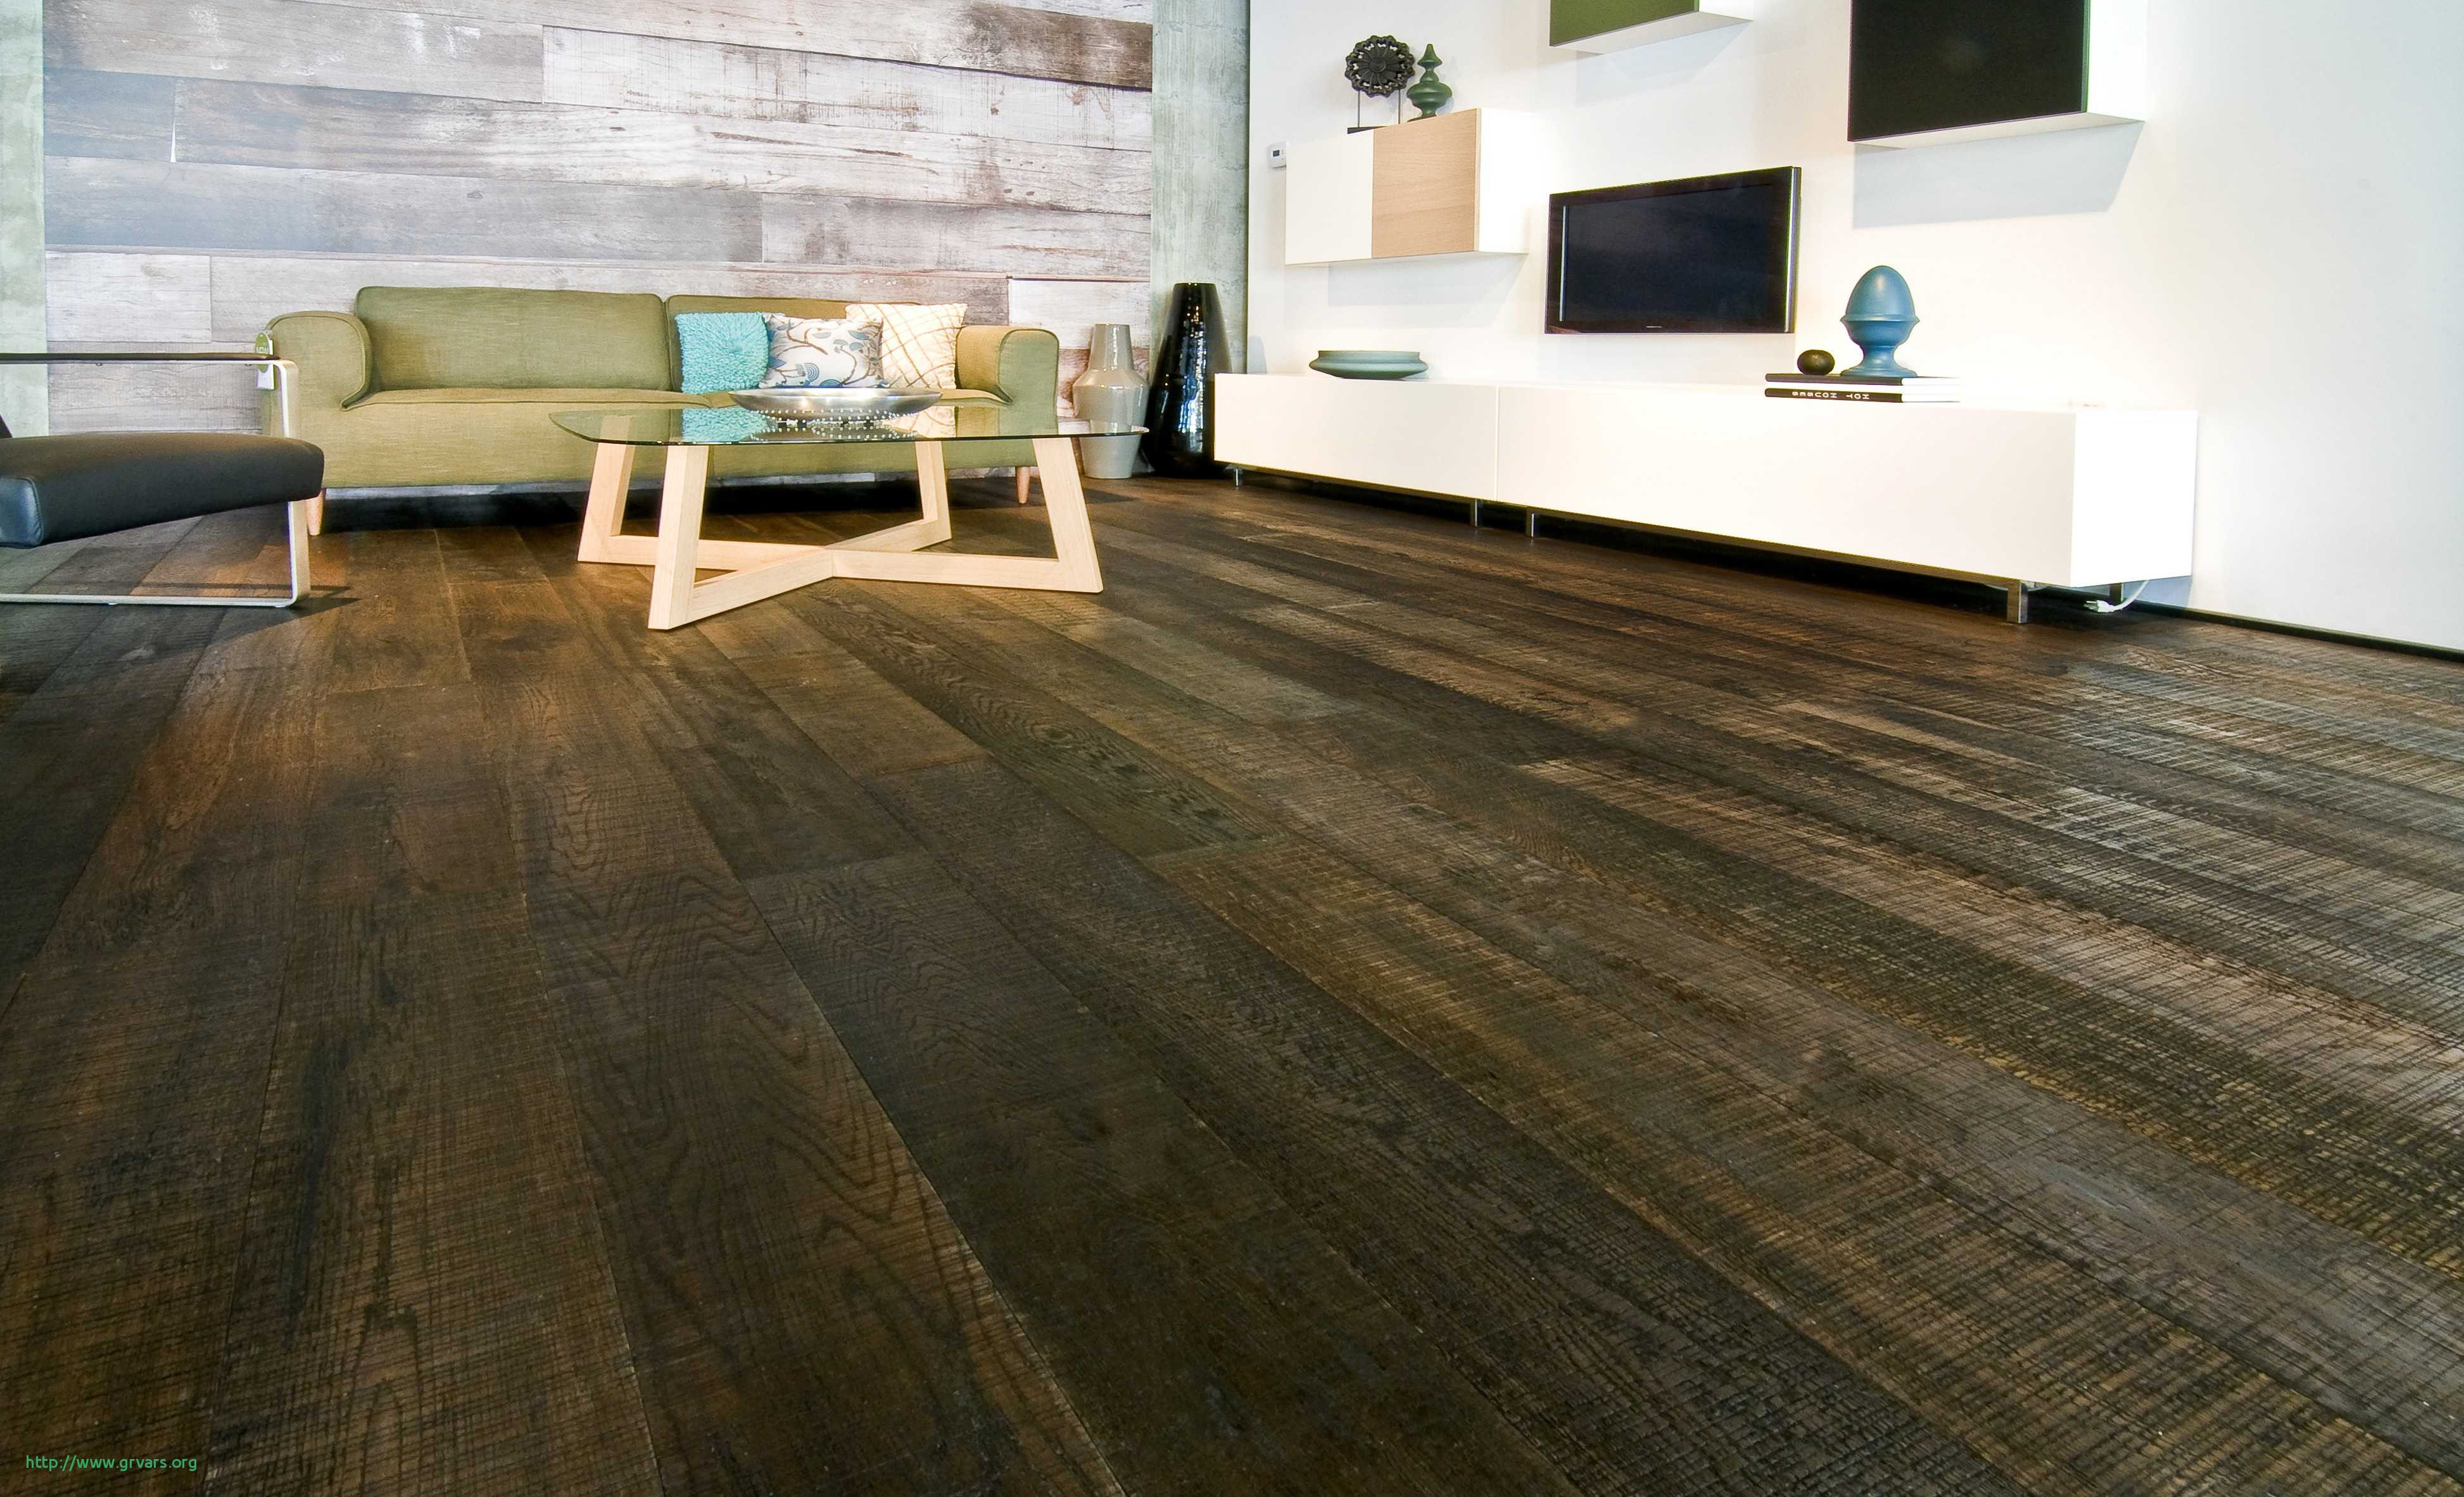 Hardwood Flooring wholesale Chicago Of 20 Impressionnant Cheapest Place to Buy Hardwood Flooring Ideas Blog Throughout Acacia Wood Flooring where to Buy Hardwood Flooring Inspirational 0d Grace Place Barnegat